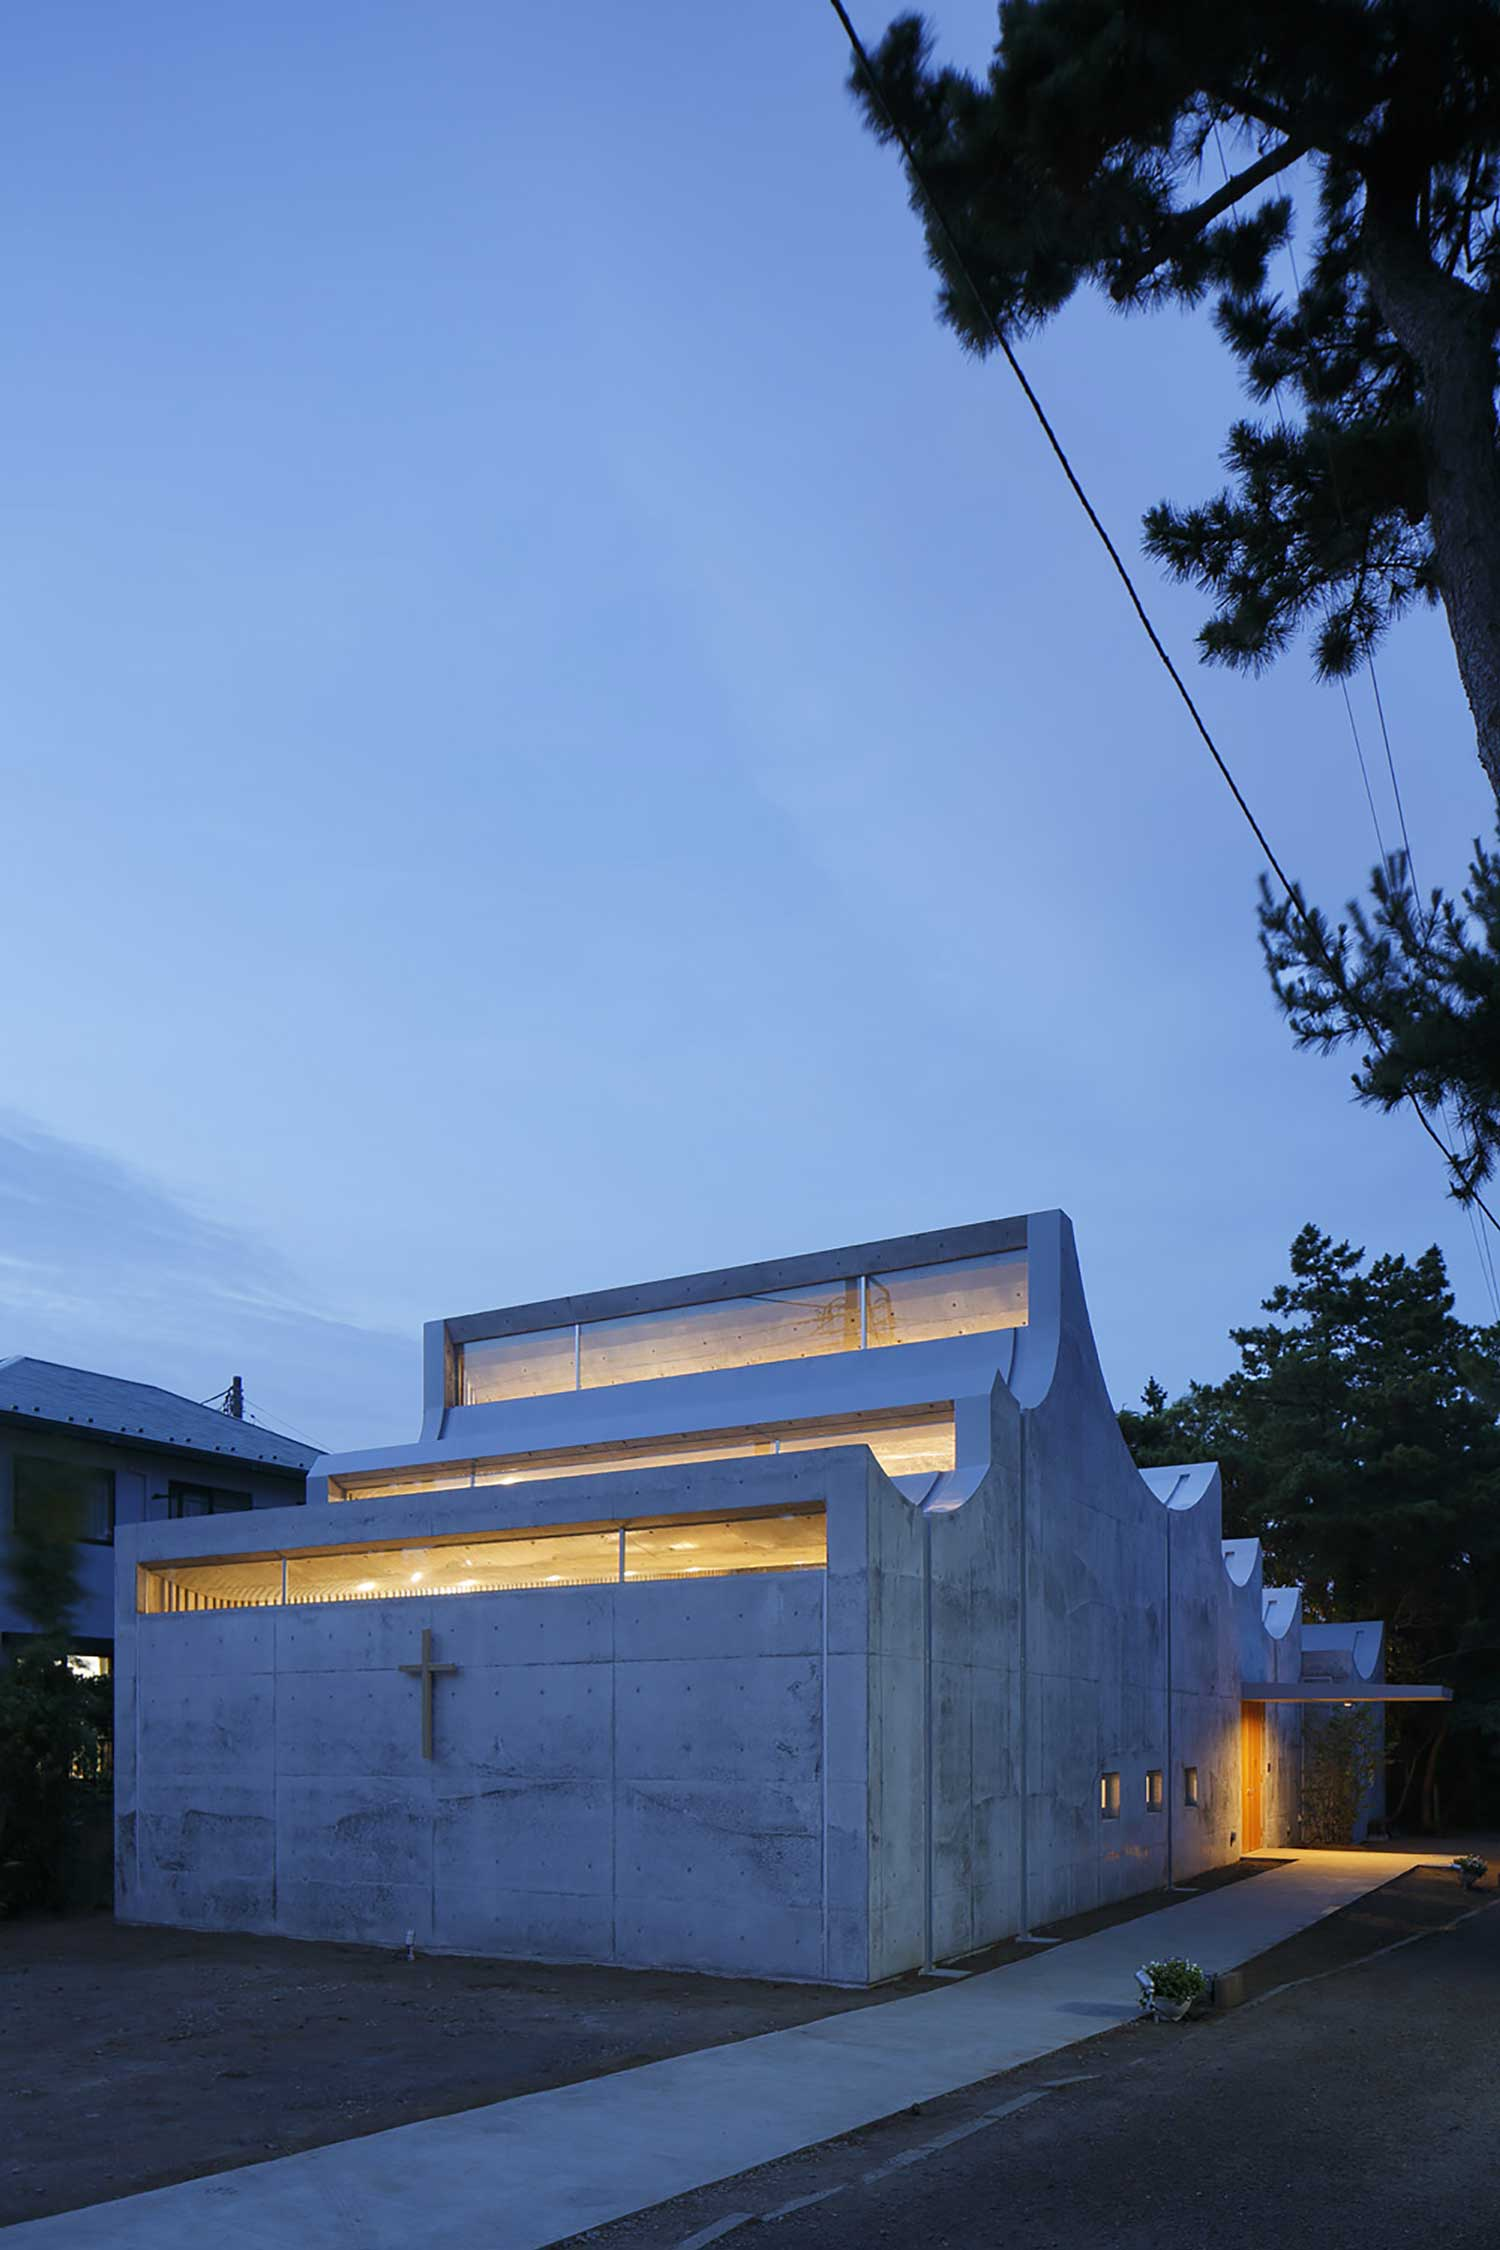 Shonan Christ Church by Takeshi Hosaka | Yellowtrace